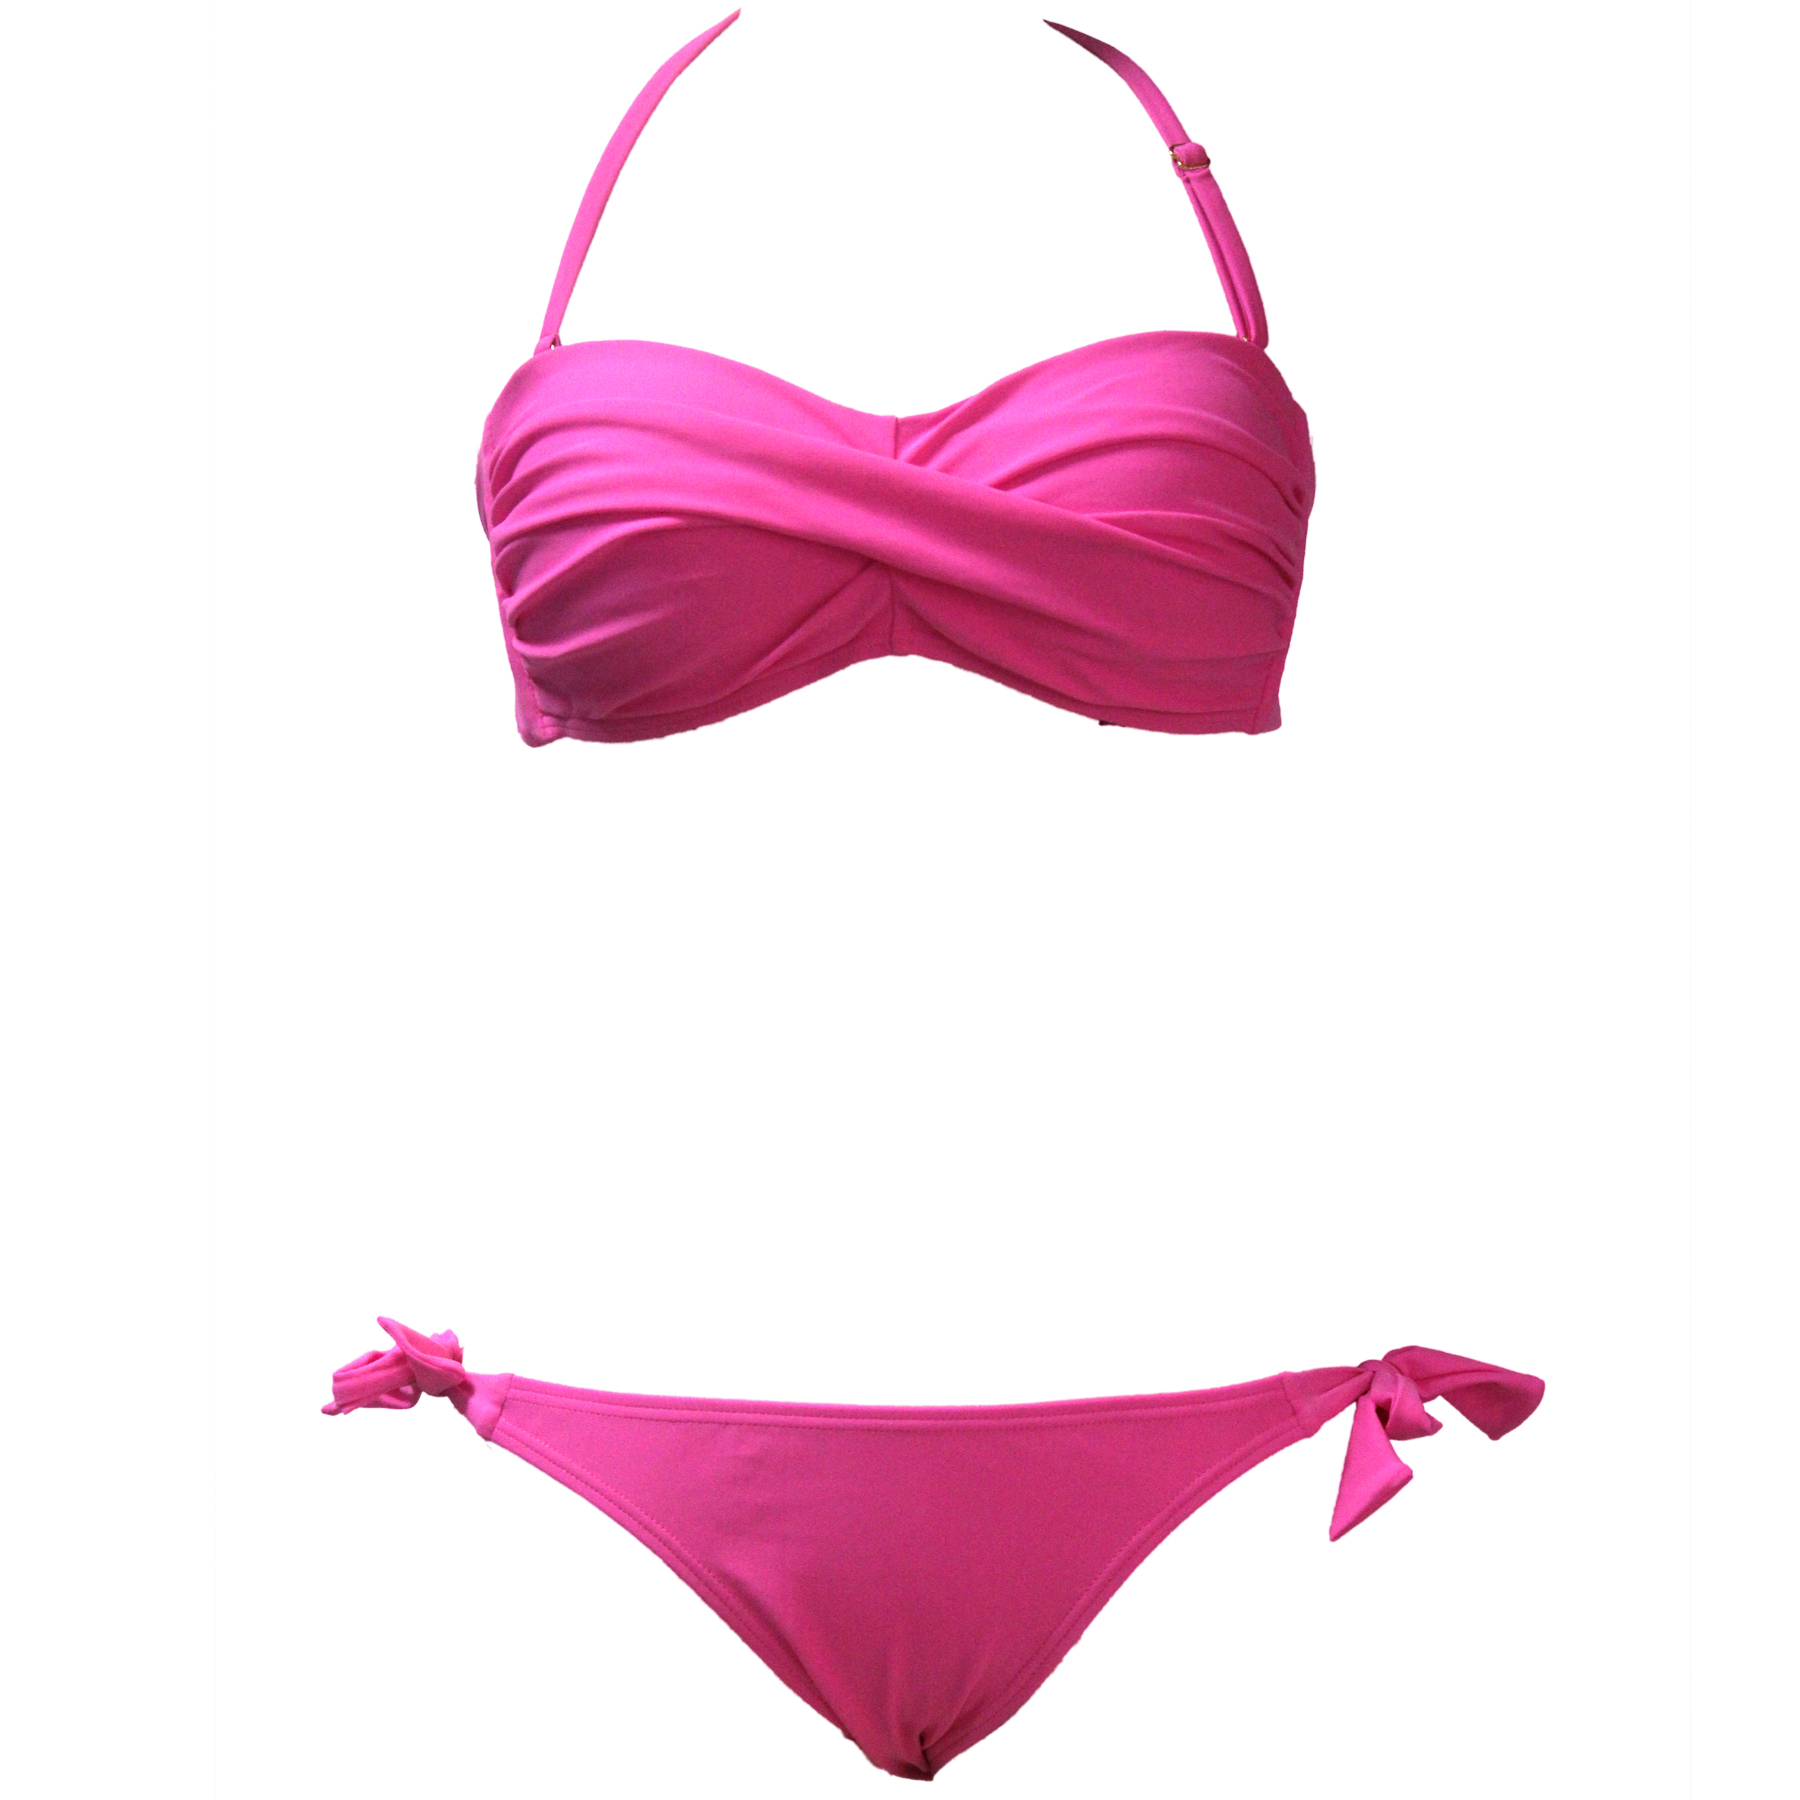 Swimsuits 2017 Sexy Bikinis Push Up Swimwear Women Swimsuit Bandeau Beach Bathing Suits Brazilian Plus Size Bikini Set Biquini plus size swimwear one piece swimsuits sexy women push up padded bikinis floral beach bathing suits push up swim wear monokini